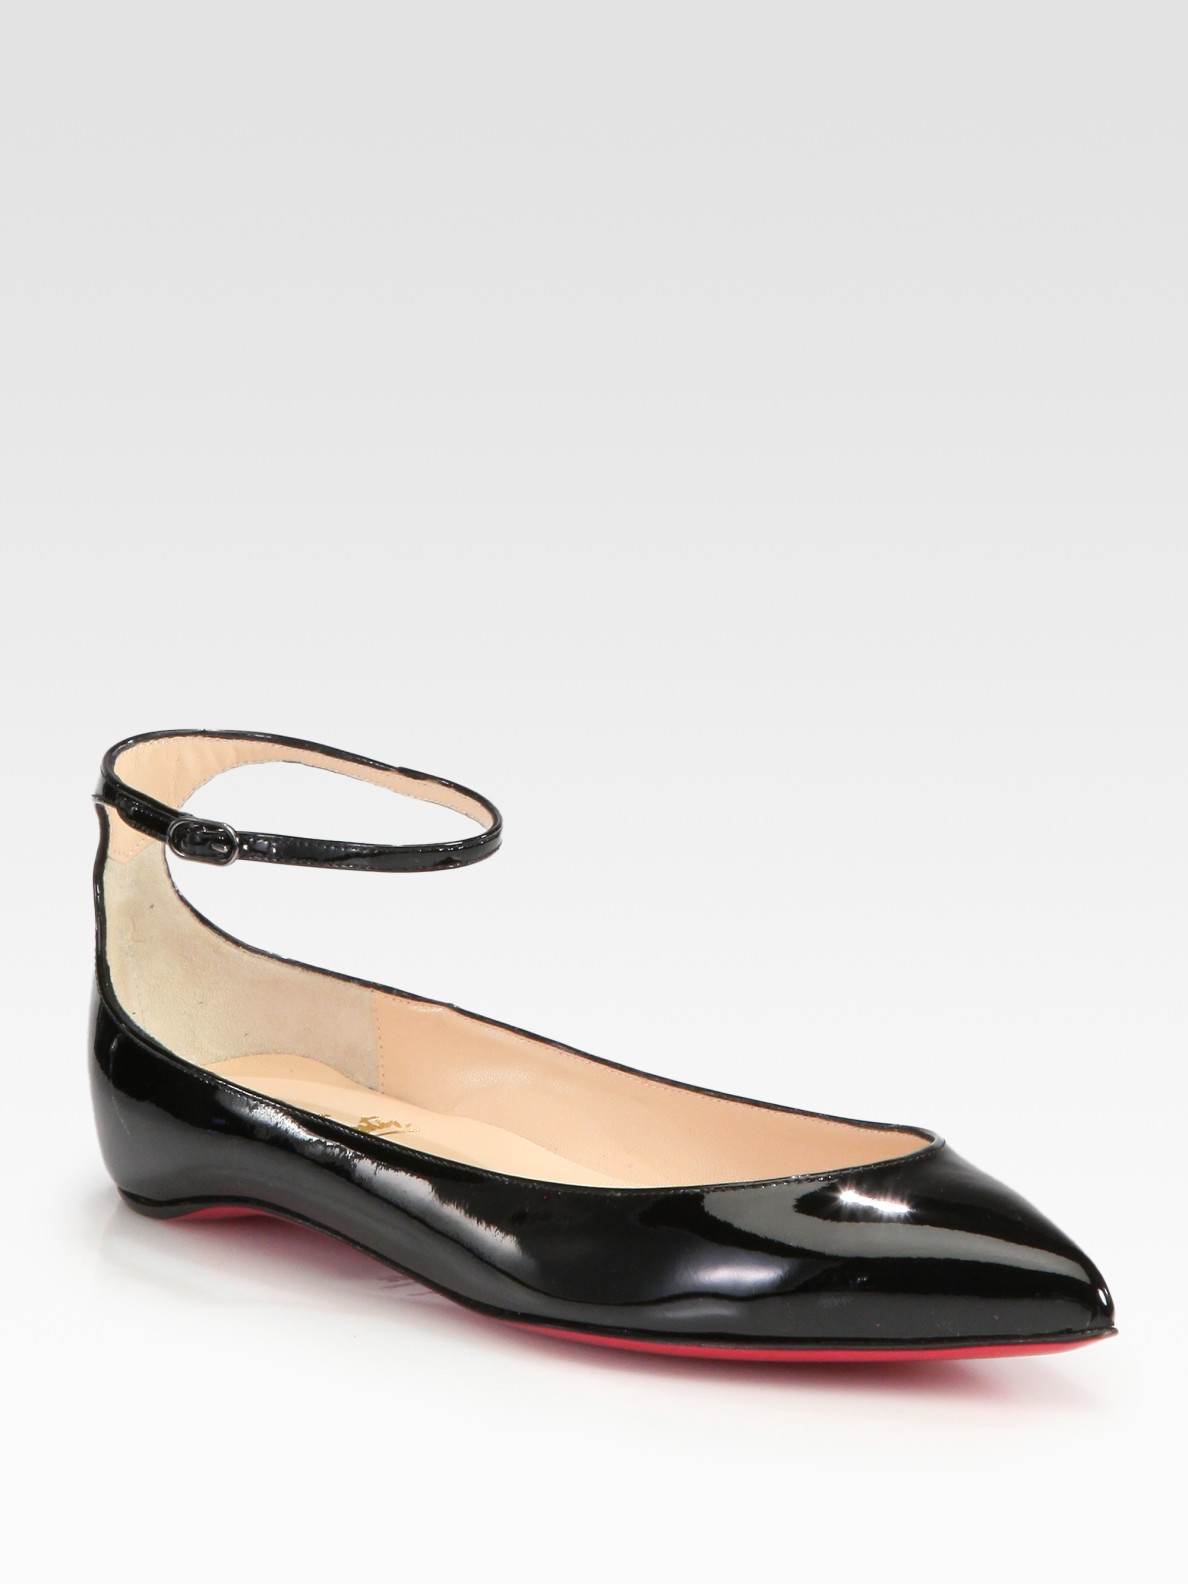 52693df4e4 ... black flats pigalle spiked ballerina a8bb1 36ca0; best price lyst christian  louboutin mrs h patent leather ankle strap flats in 56d2d 726fd